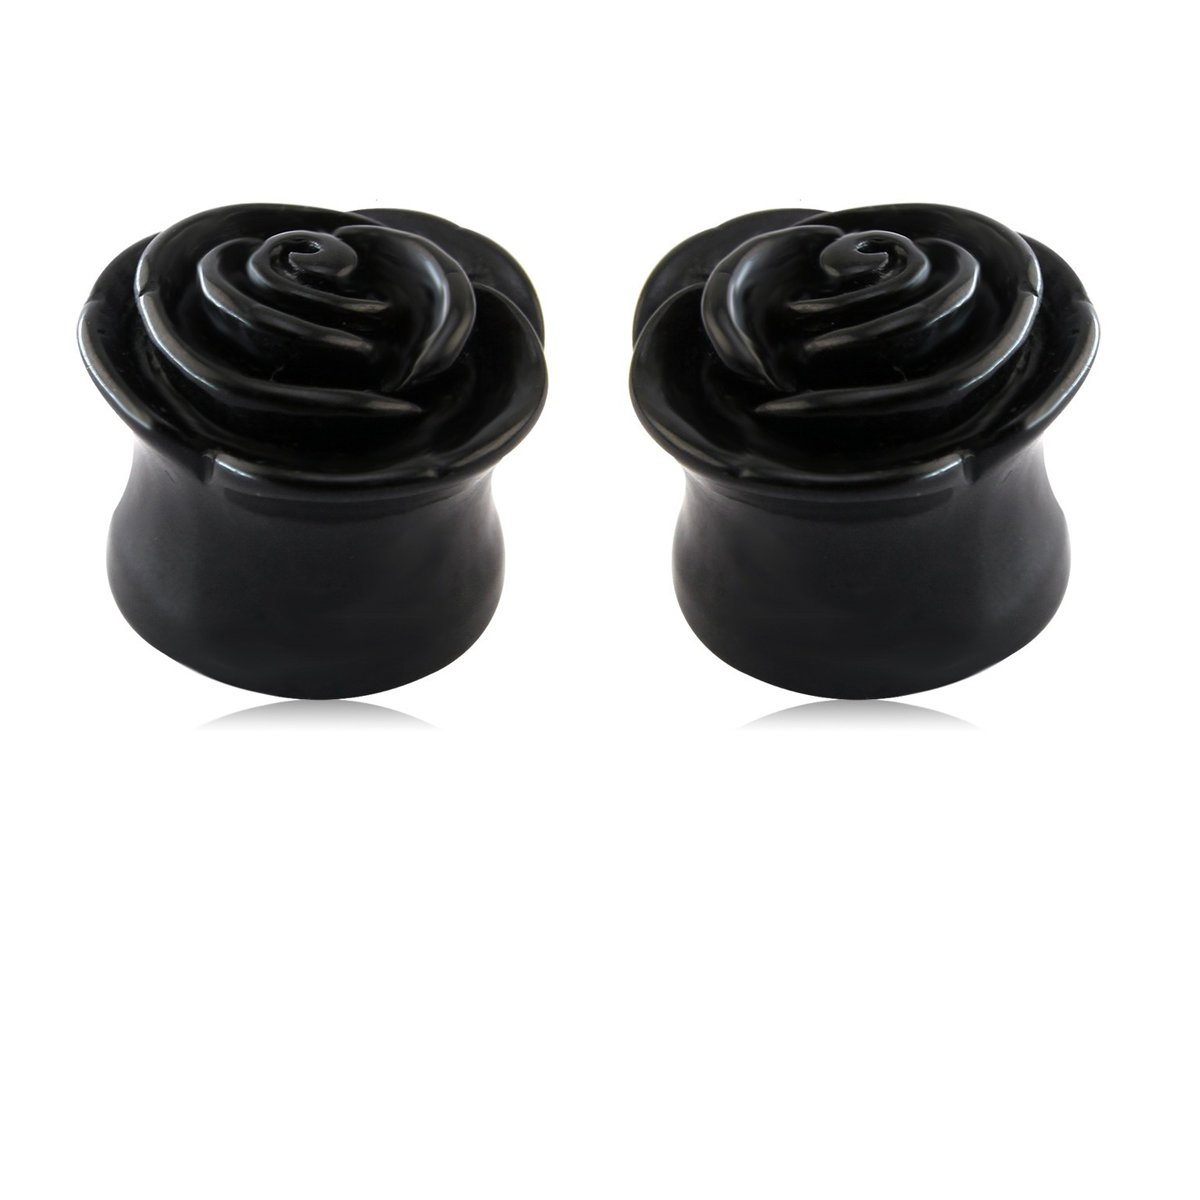 1 Pair Black Rose Shape Obsidian Stone Ear Plugs Stretching Ear Piercing MissDaisy